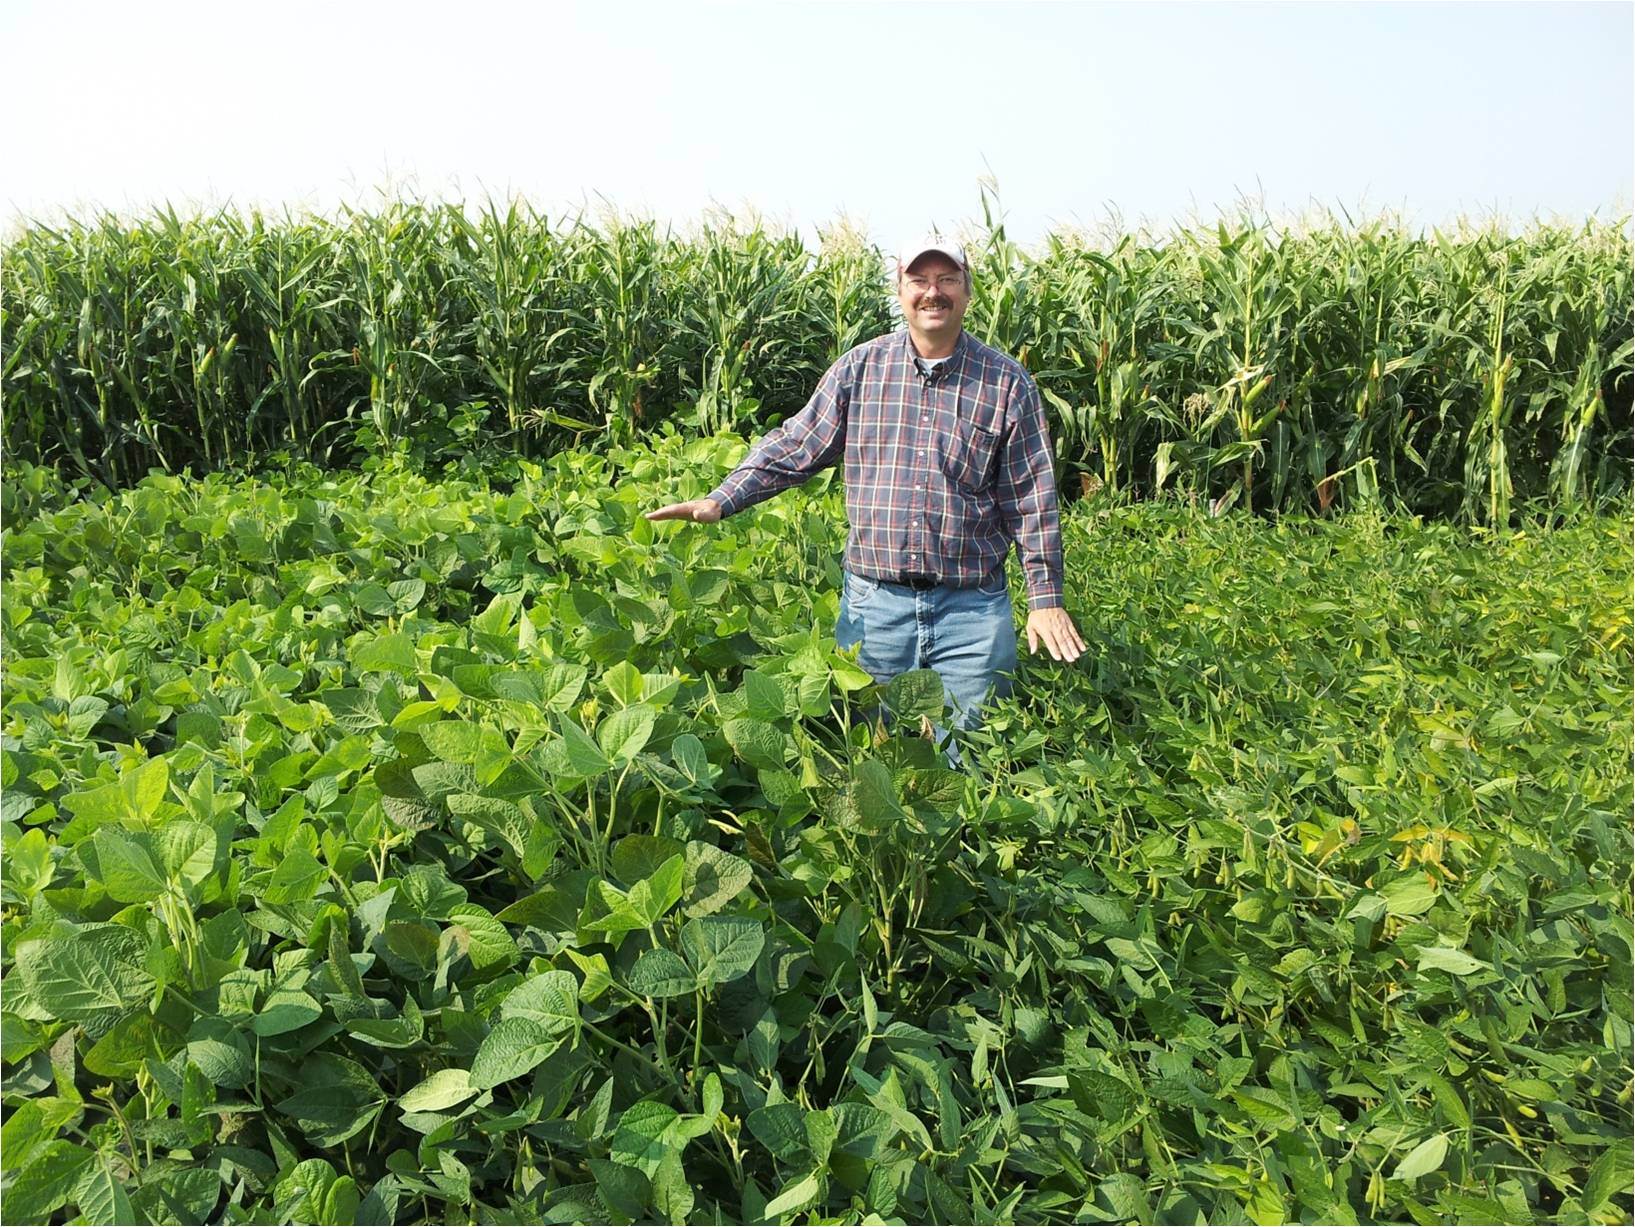 Steve Norberg standing in soybean field.